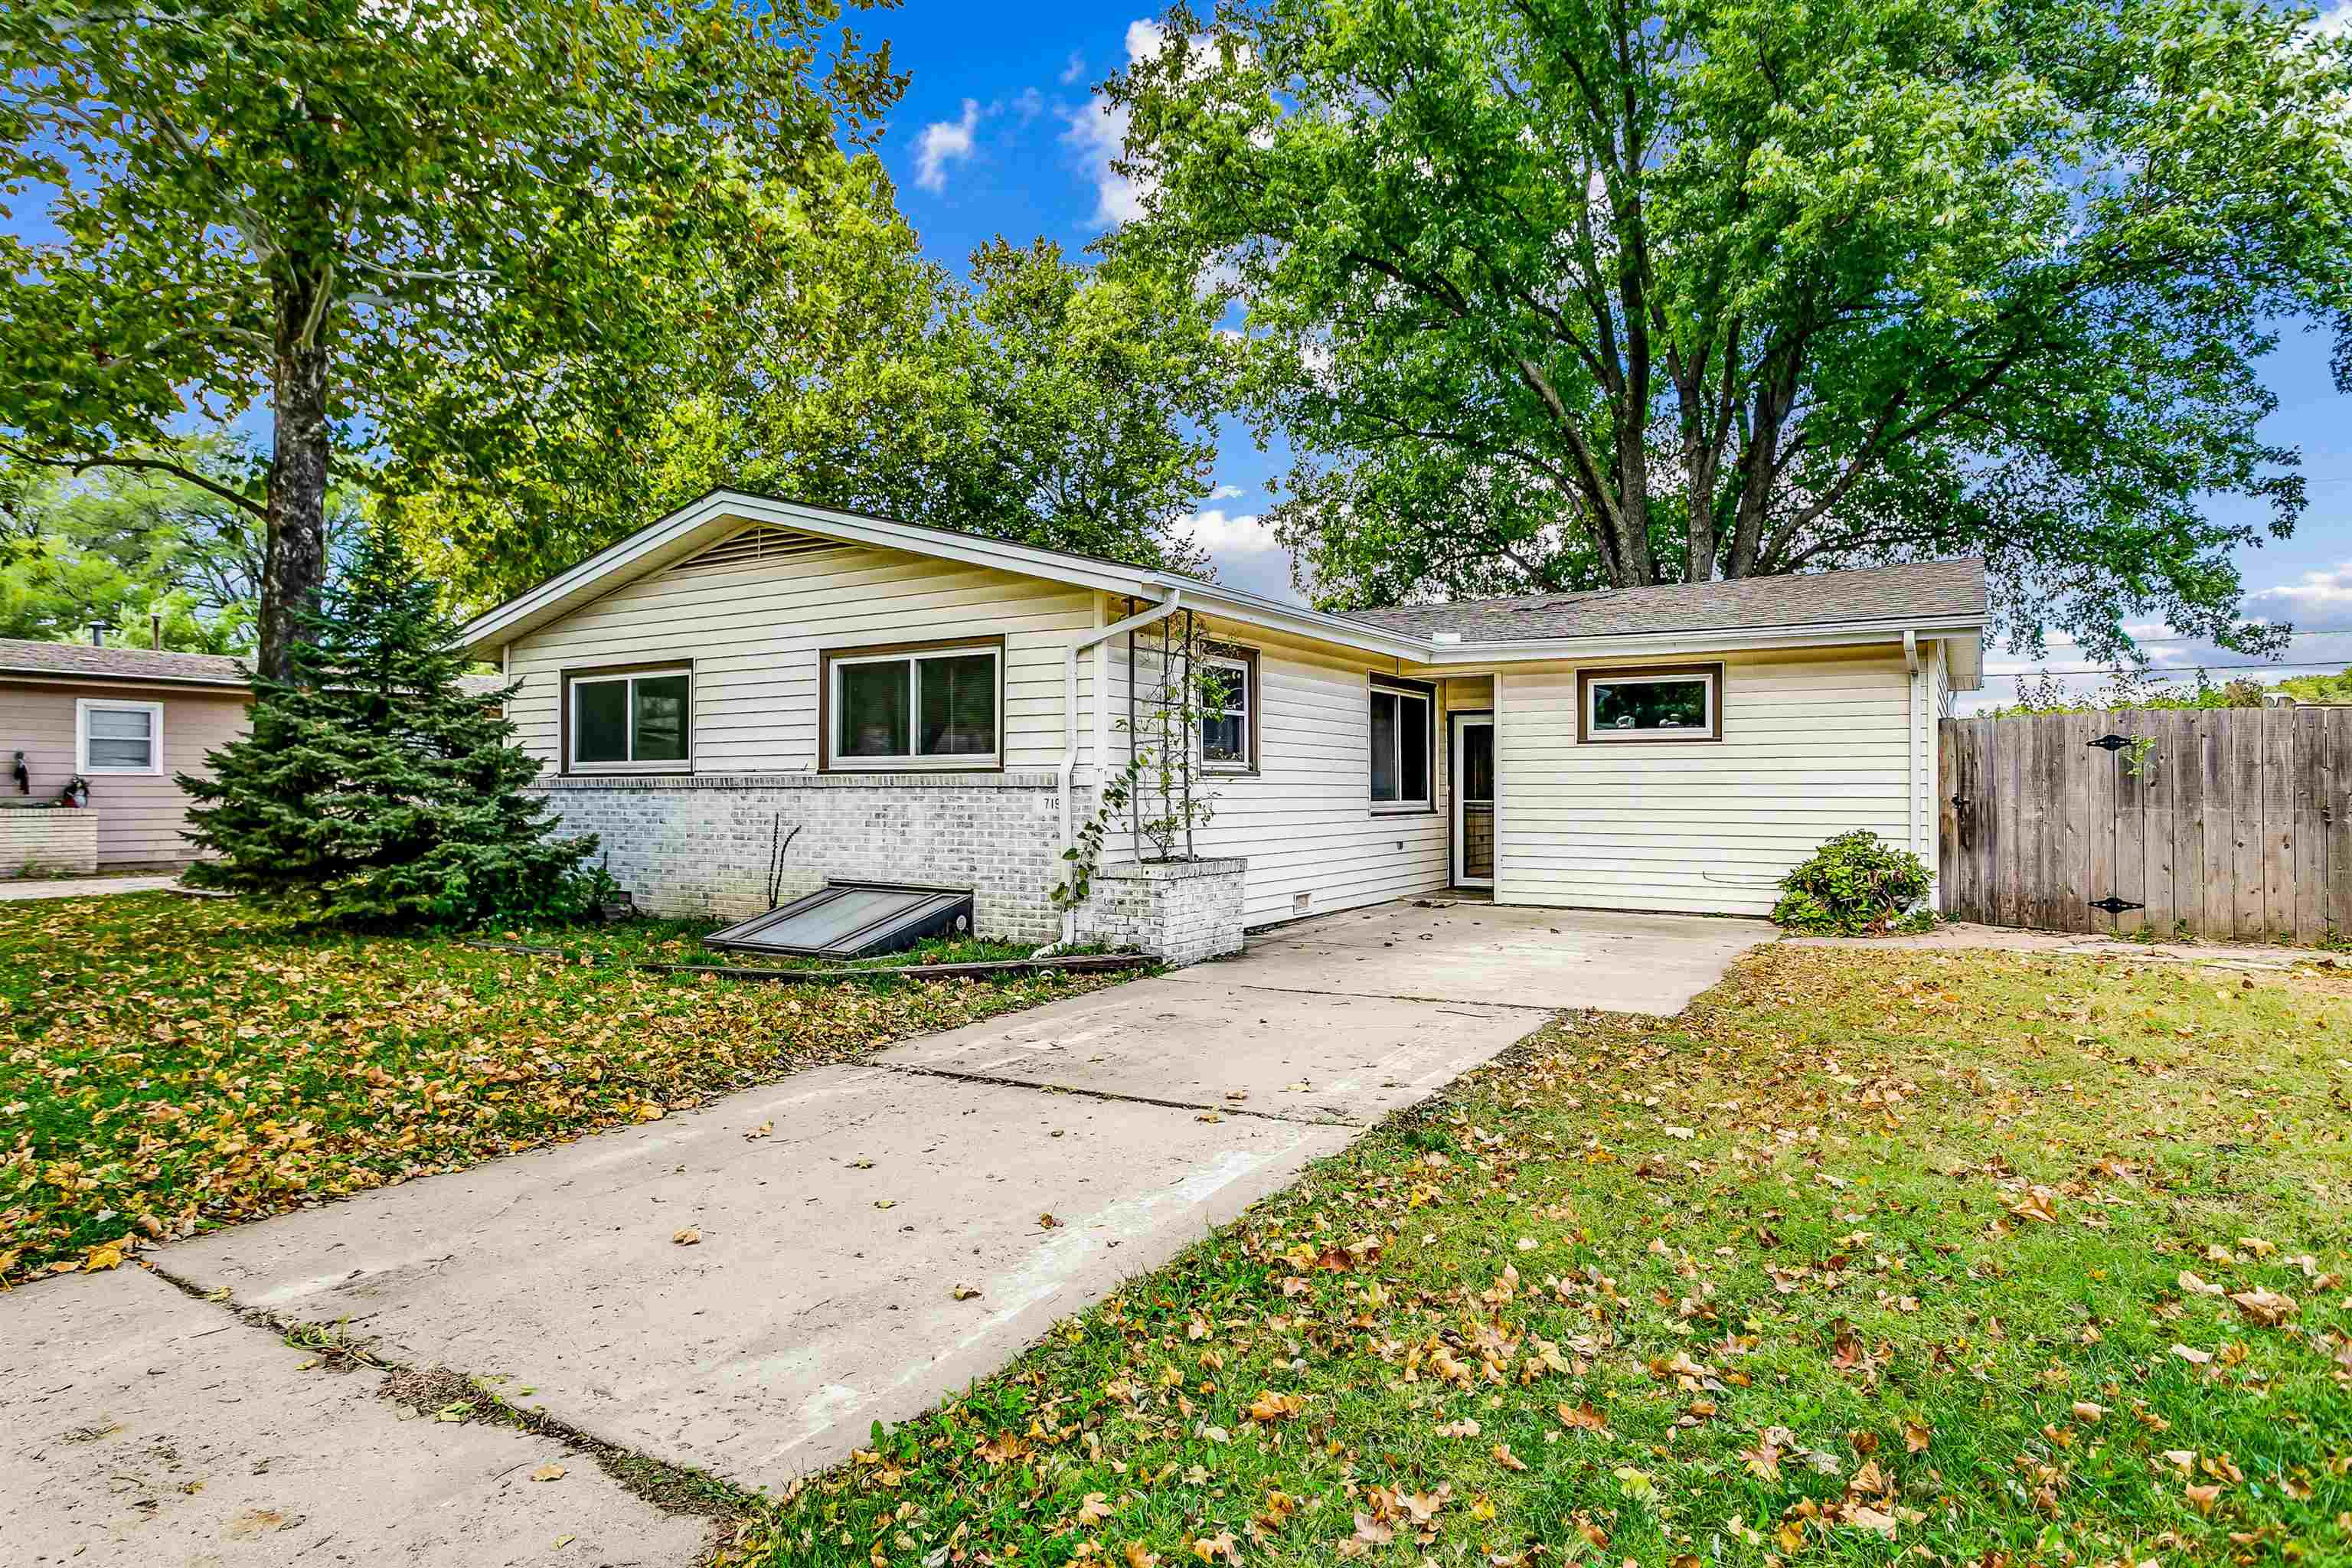 Hard To Find In This Price Point 4 Bedroom 2 Full Bath Ranch With Finished Basement! Same Owner Sinc